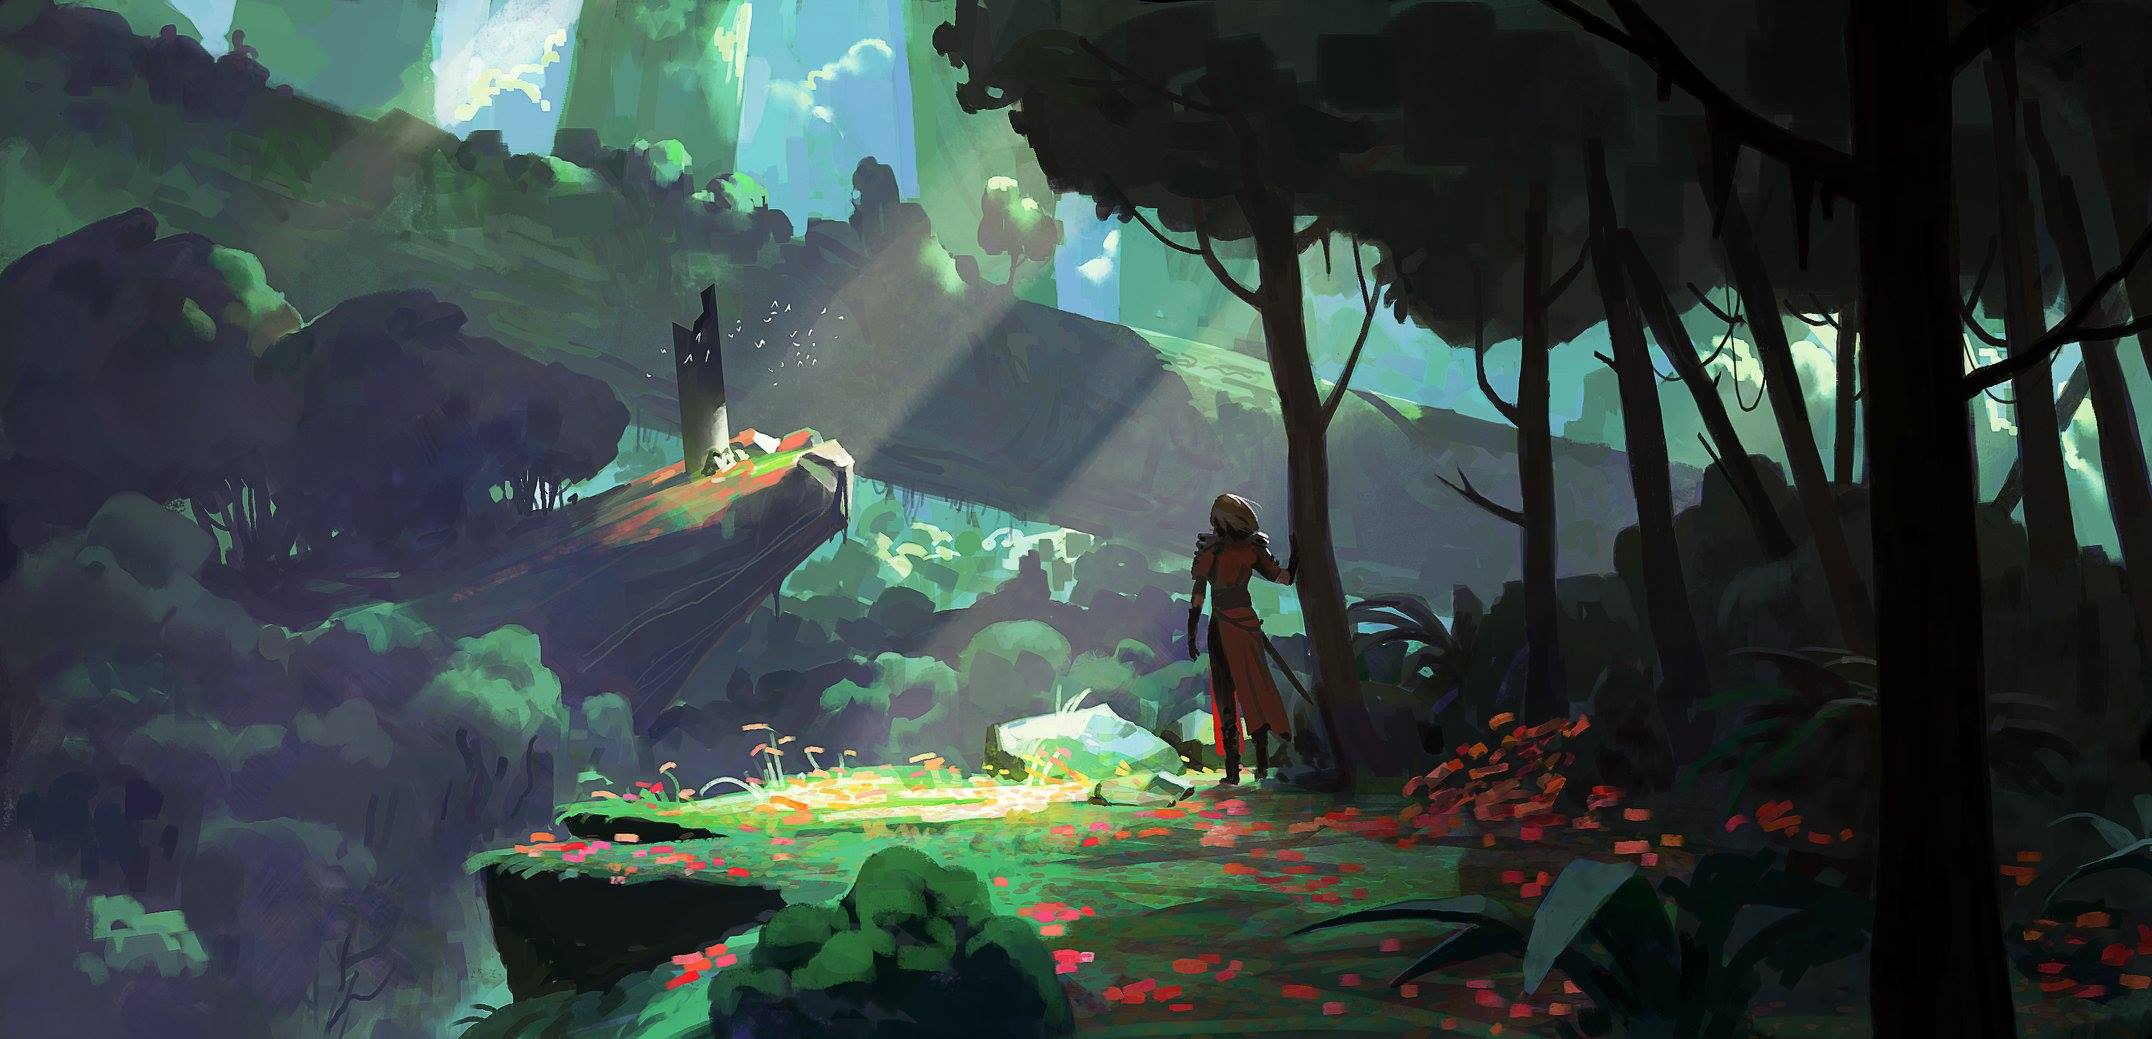 absolver is shaping up to be a very unique action rpg